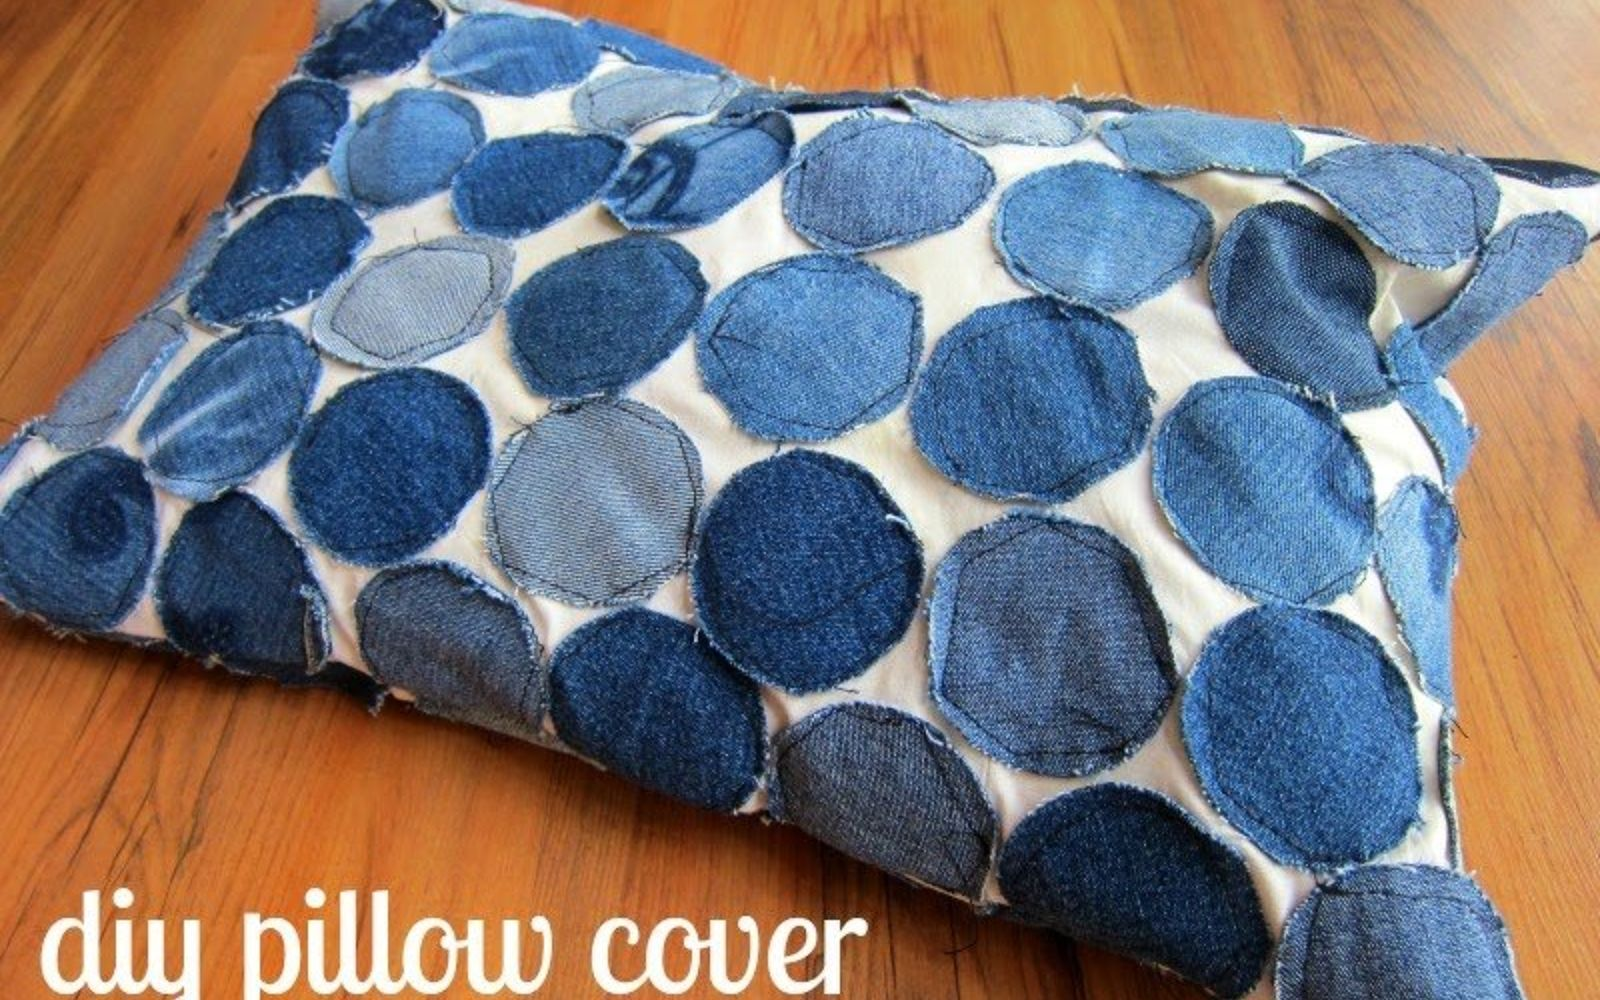 s 19 gorgeous reasons to dig your old jeans out of the closet, crafts, repurposing upcycling, Cover a throw pillow in cut jean circles